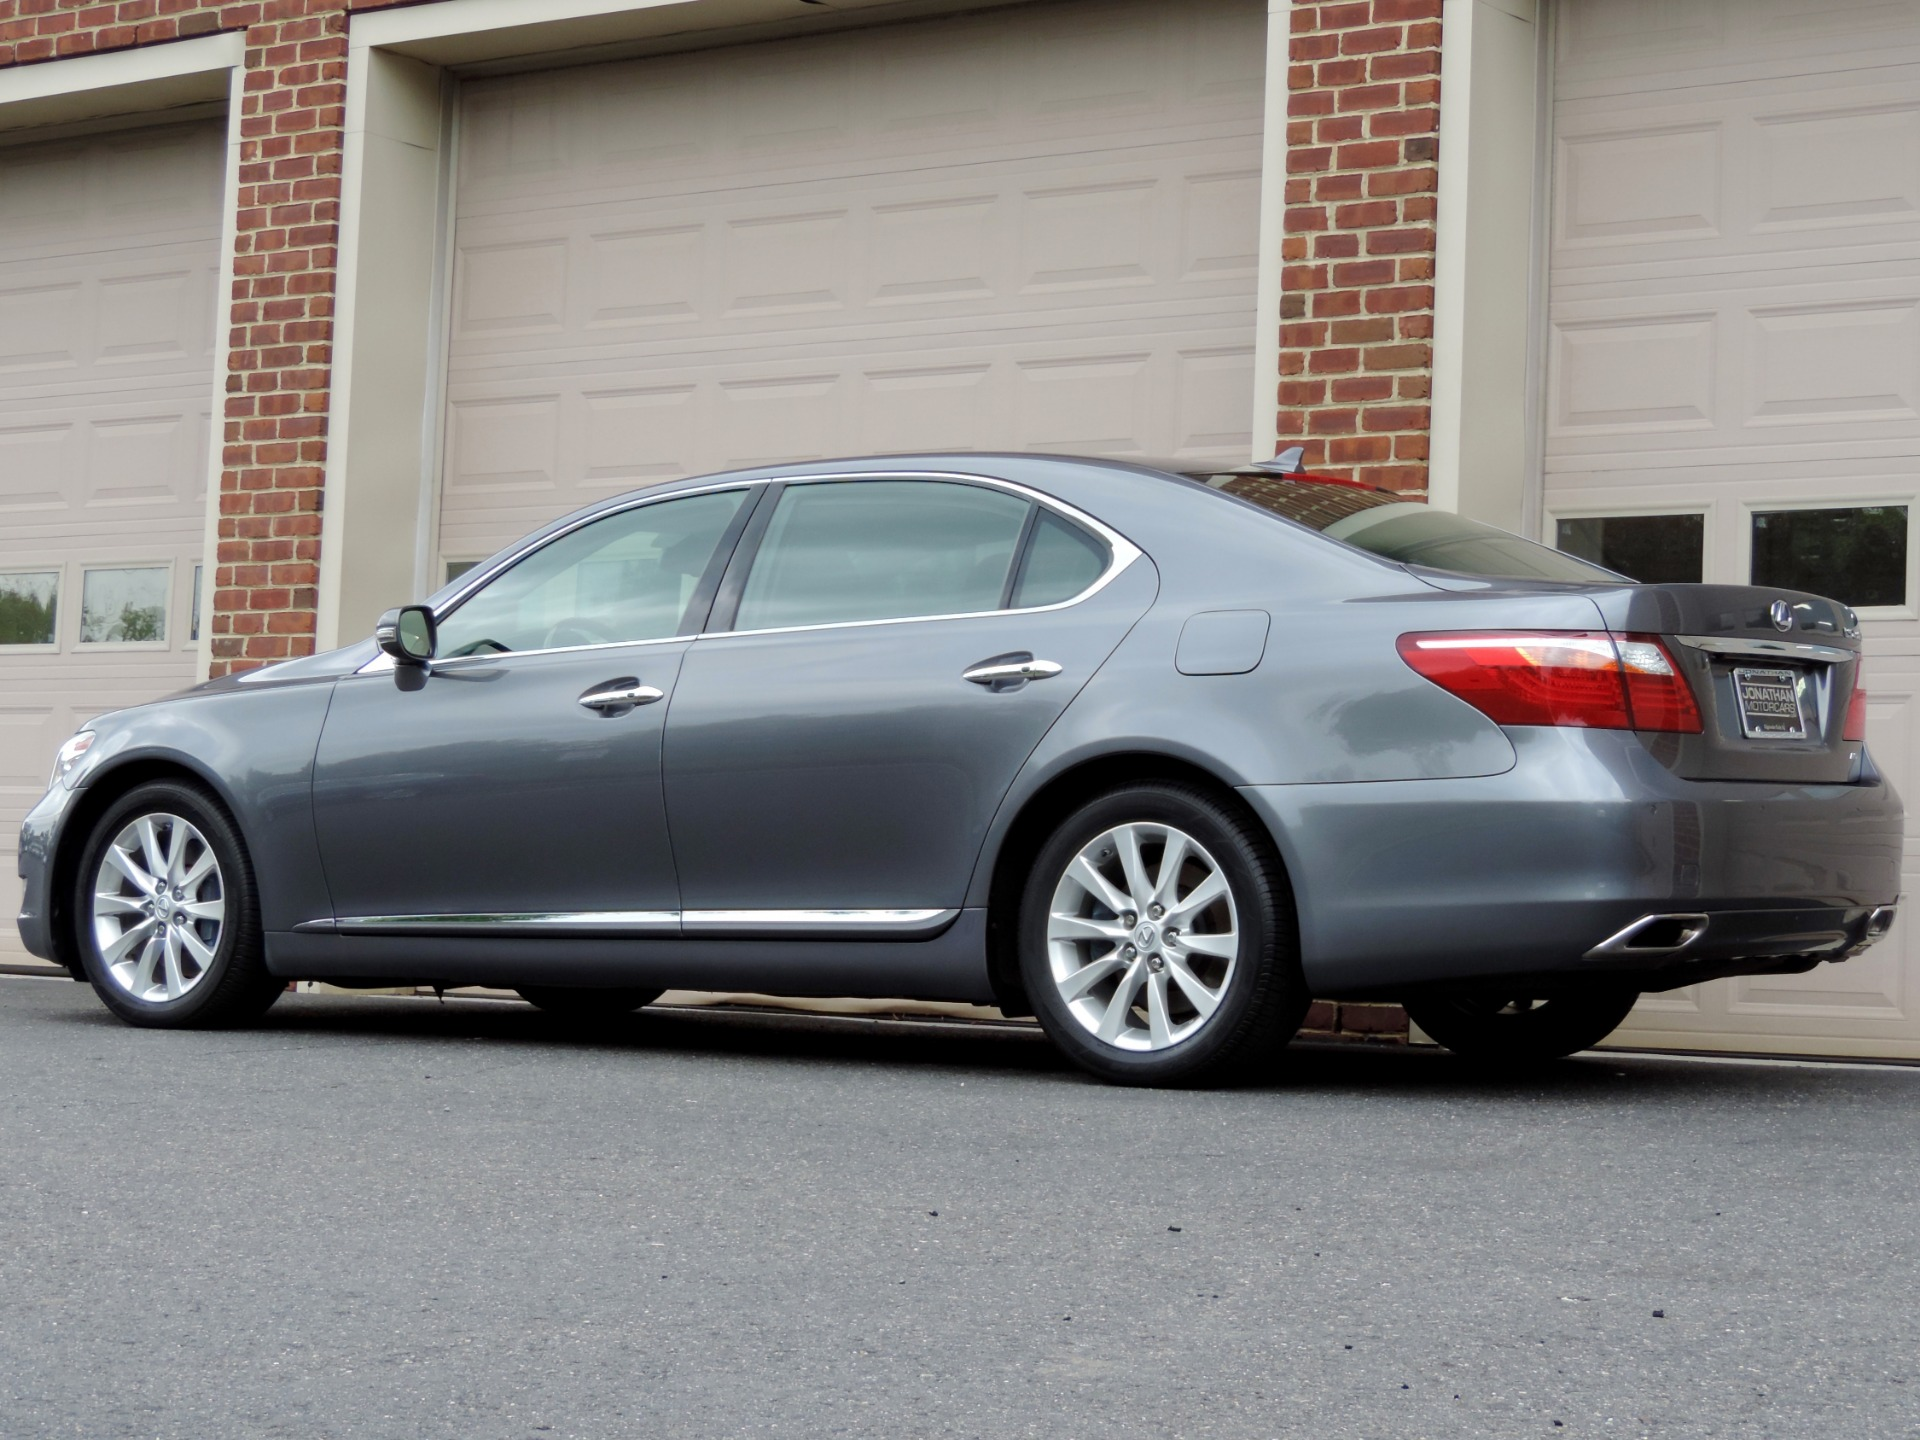 100 lexus sedan 2012 lexus hybrid brims imports used 2013 lexus ls 460 for sale pricing. Black Bedroom Furniture Sets. Home Design Ideas